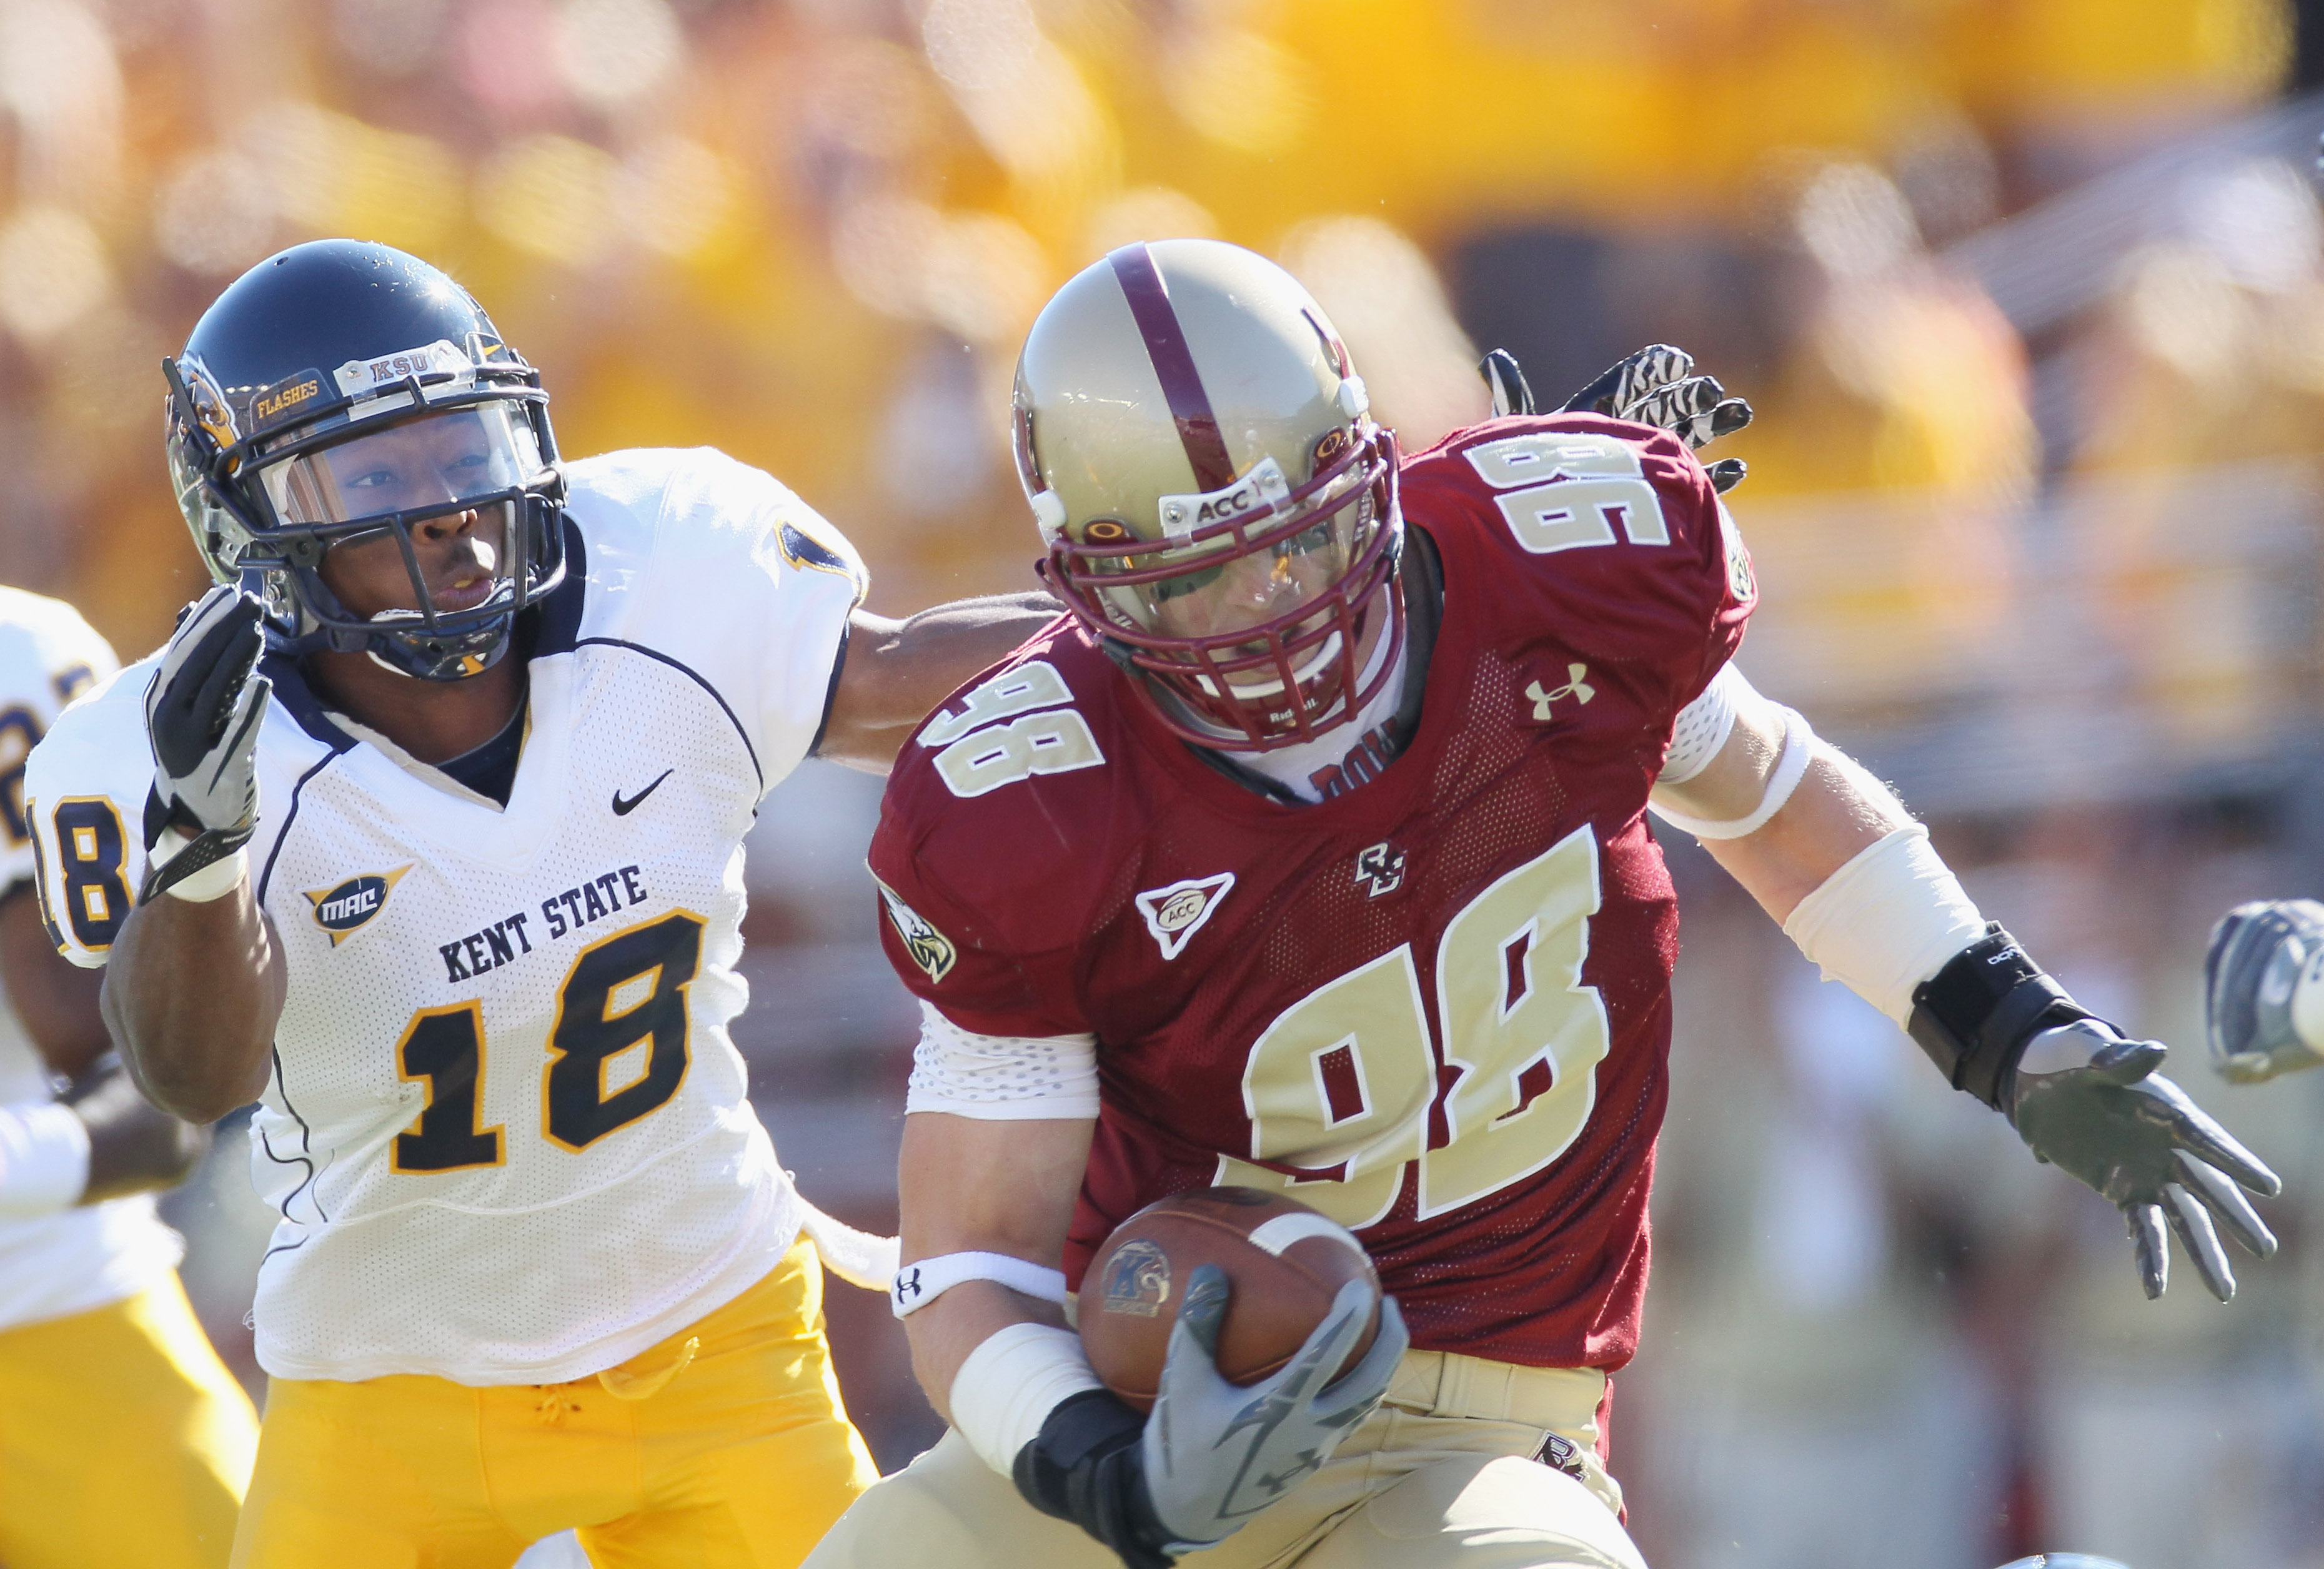 CHESTNUT HILL, MA - SEPTEMBER 11:  Alex Albright #98 of the Boston College Eagles carries the ball after he intercepted a pass as Sam Kirkland #18 of the Kent State Golden Flashes defends on September 11, 2010 at Alumni Stadium in Chestnut Hill, Massachus